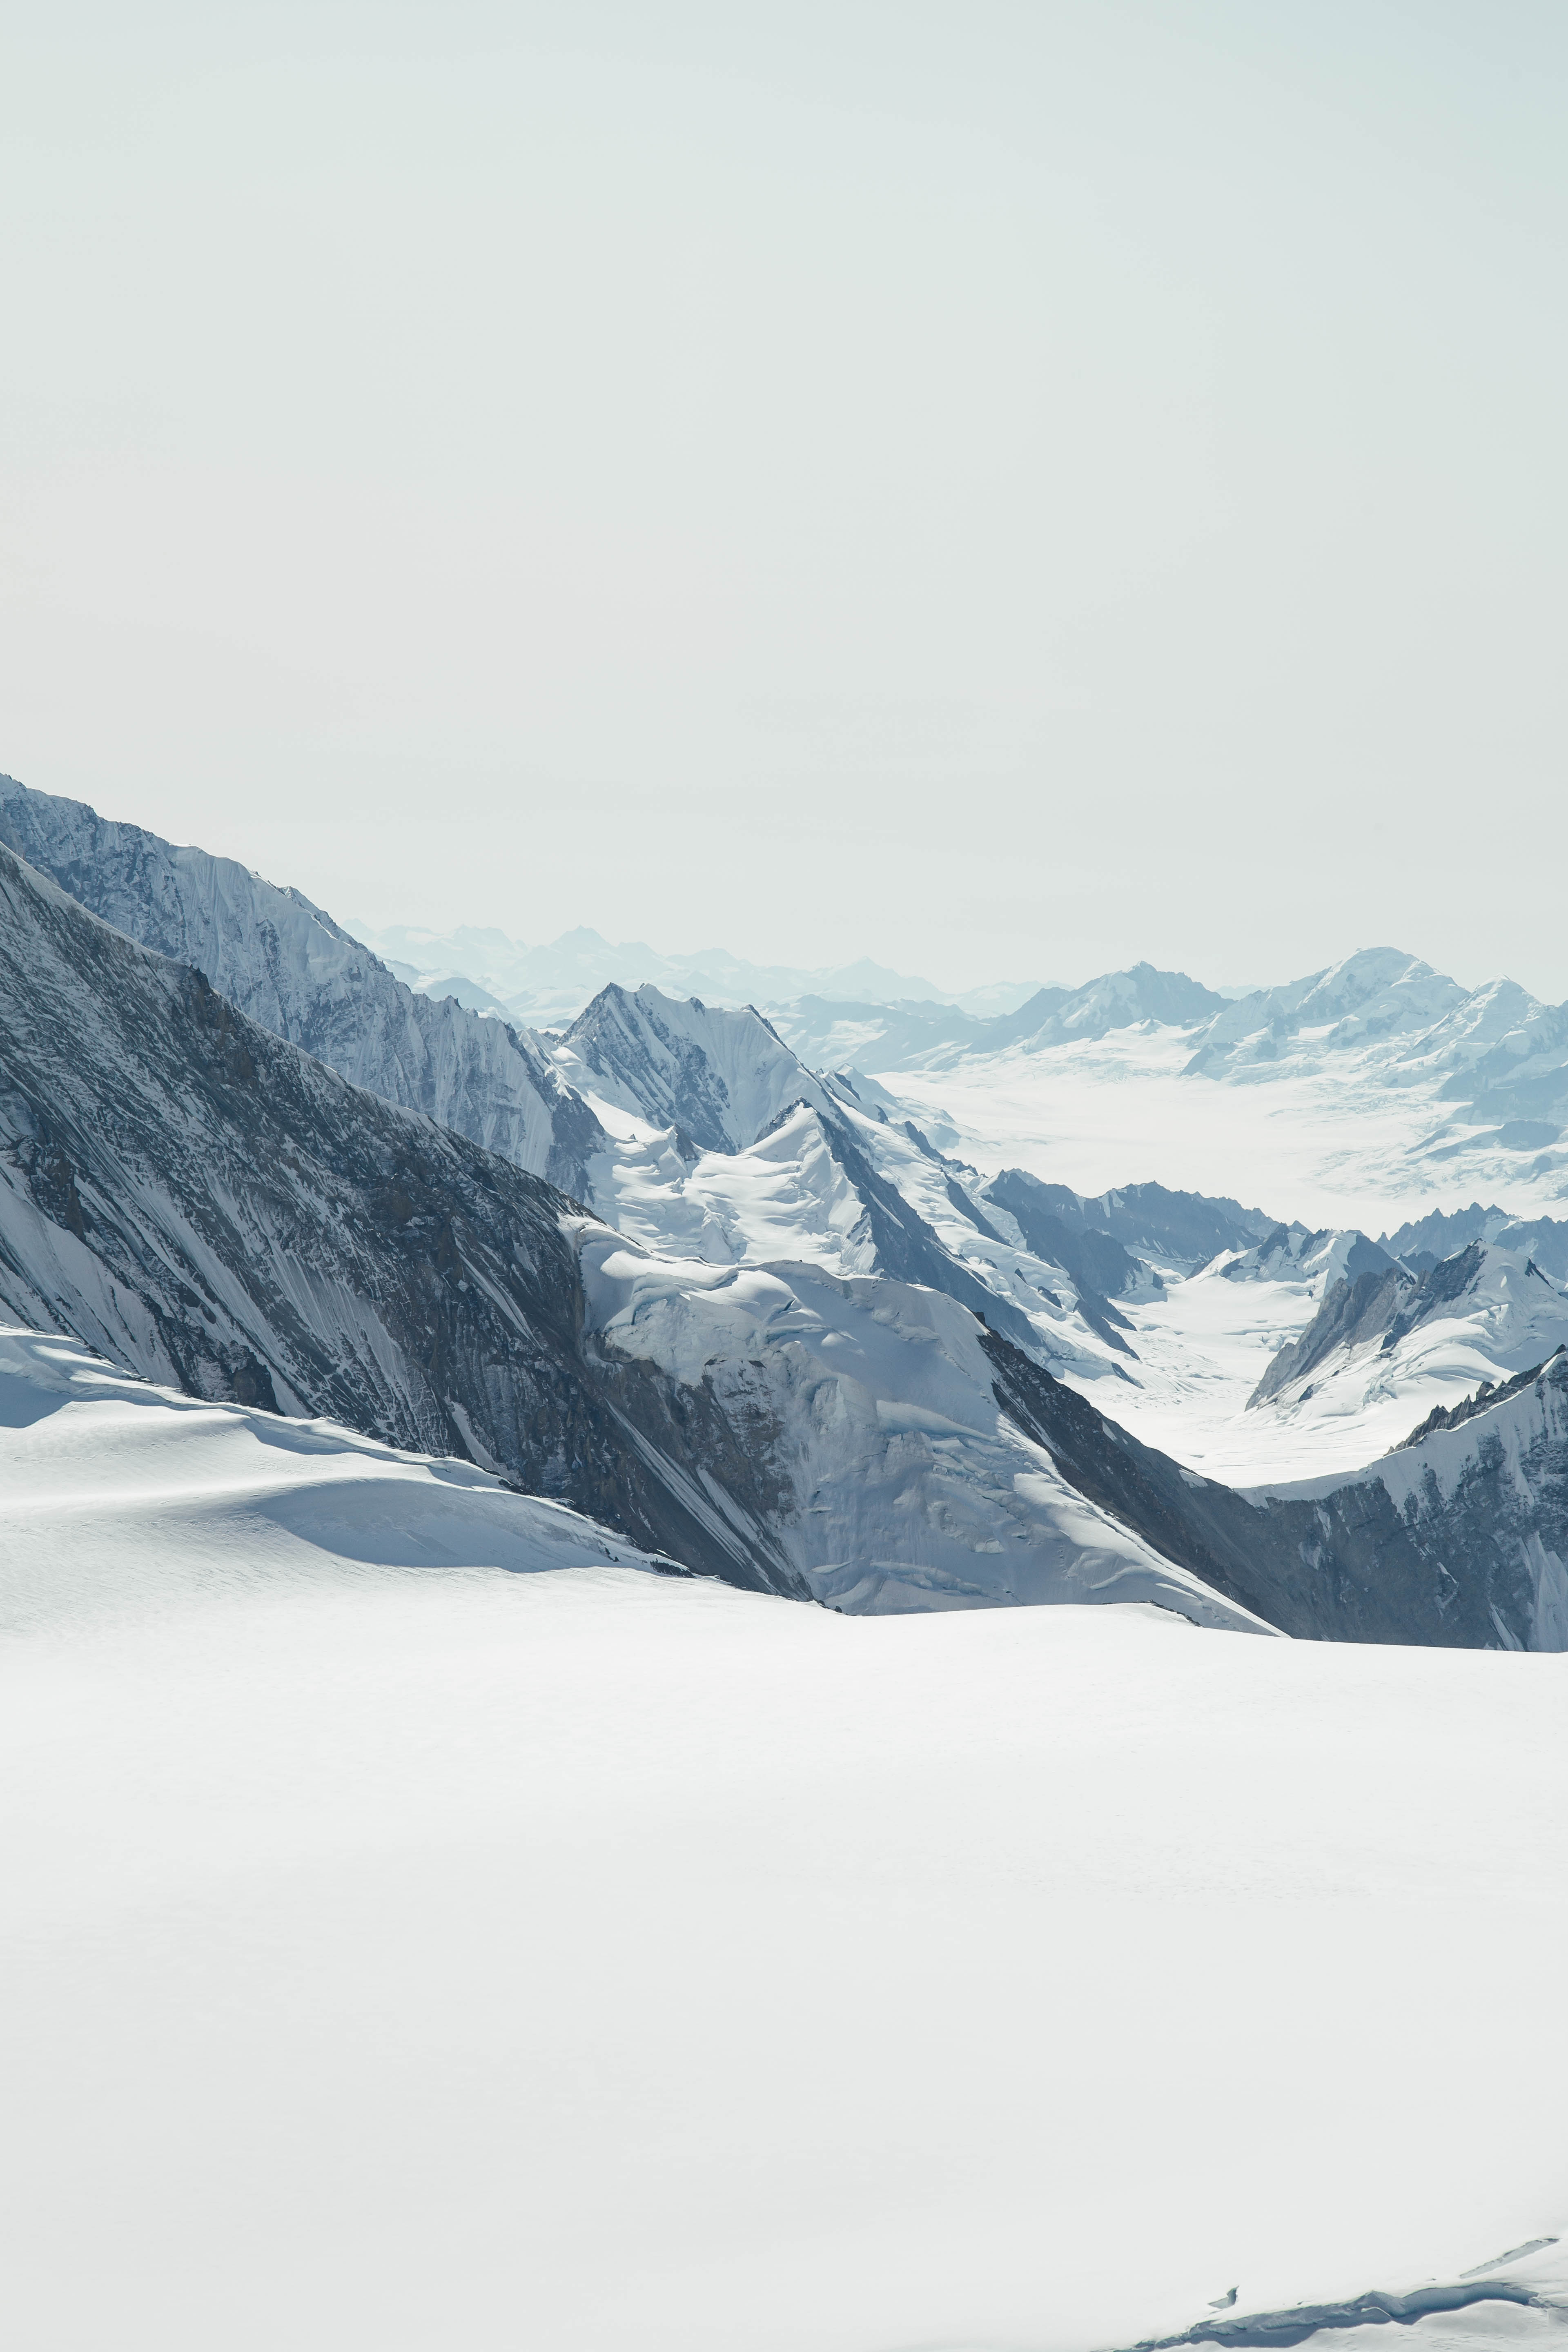 Mountains in Kluane National Park Canada